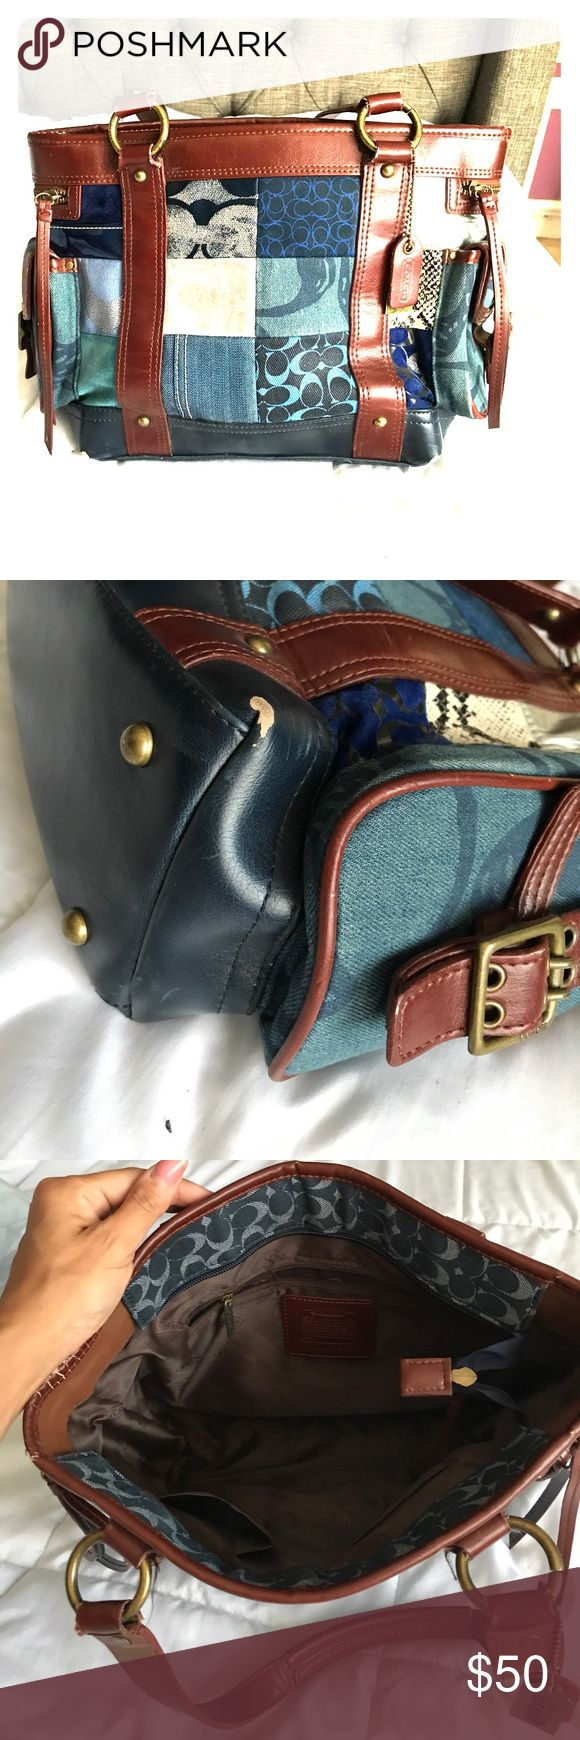 Coach purse Blue patchwork Coach purse. Has wear on all 4 corners as pictured-price reflects wear. Otherwise in pristine condition. Clean inside. Coach Bags Shoulder Bags